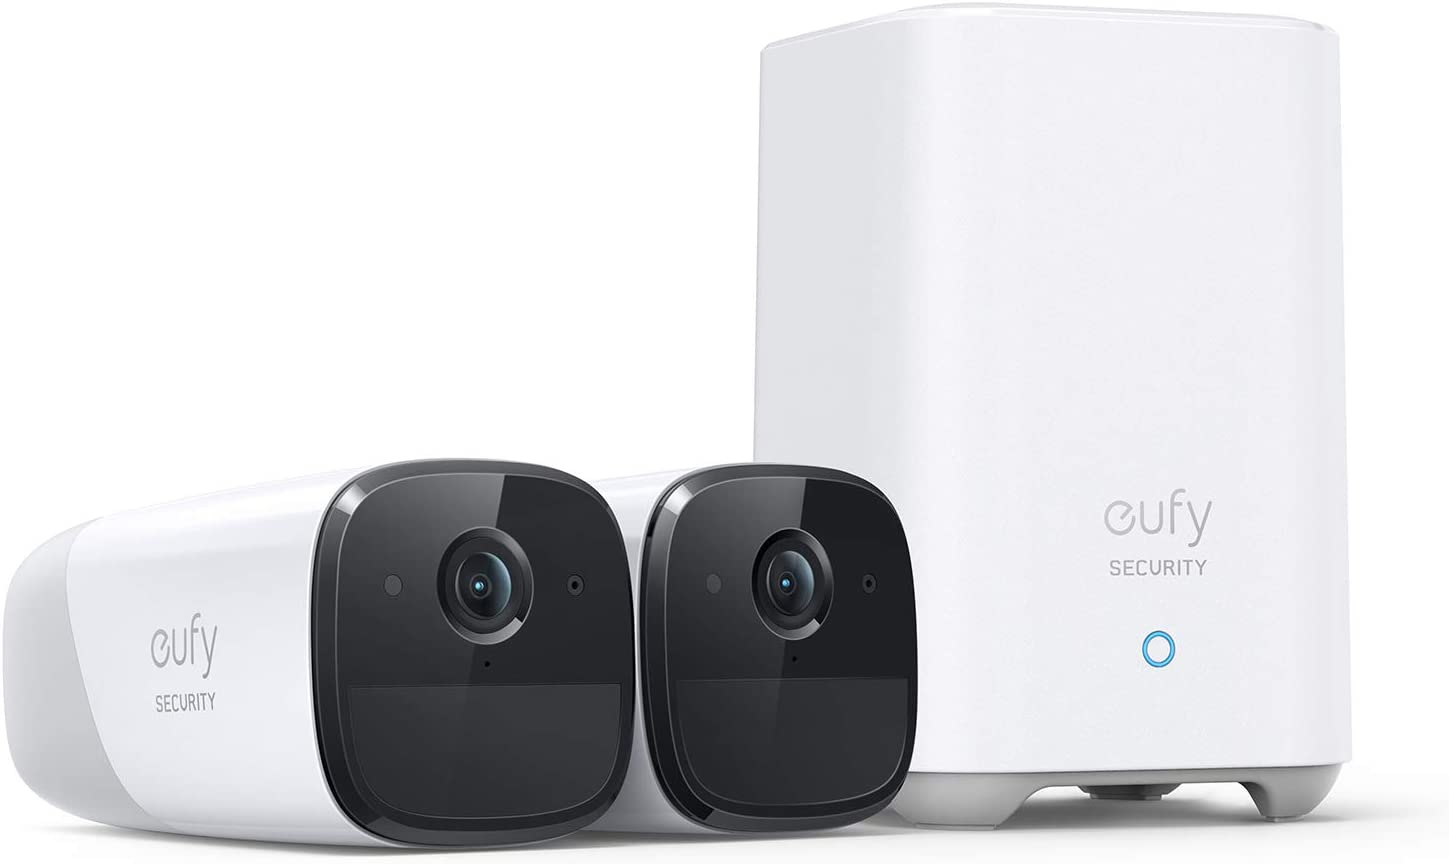 eufy Security, eufyCam 2 Pro Wireless Home Security Camera System, 365-Day Battery Life, HomeKit Compatibility, 2K Resolution, IP67 Weatherproof, Night Vision, 2-Cam Kit, No Monthly Fee